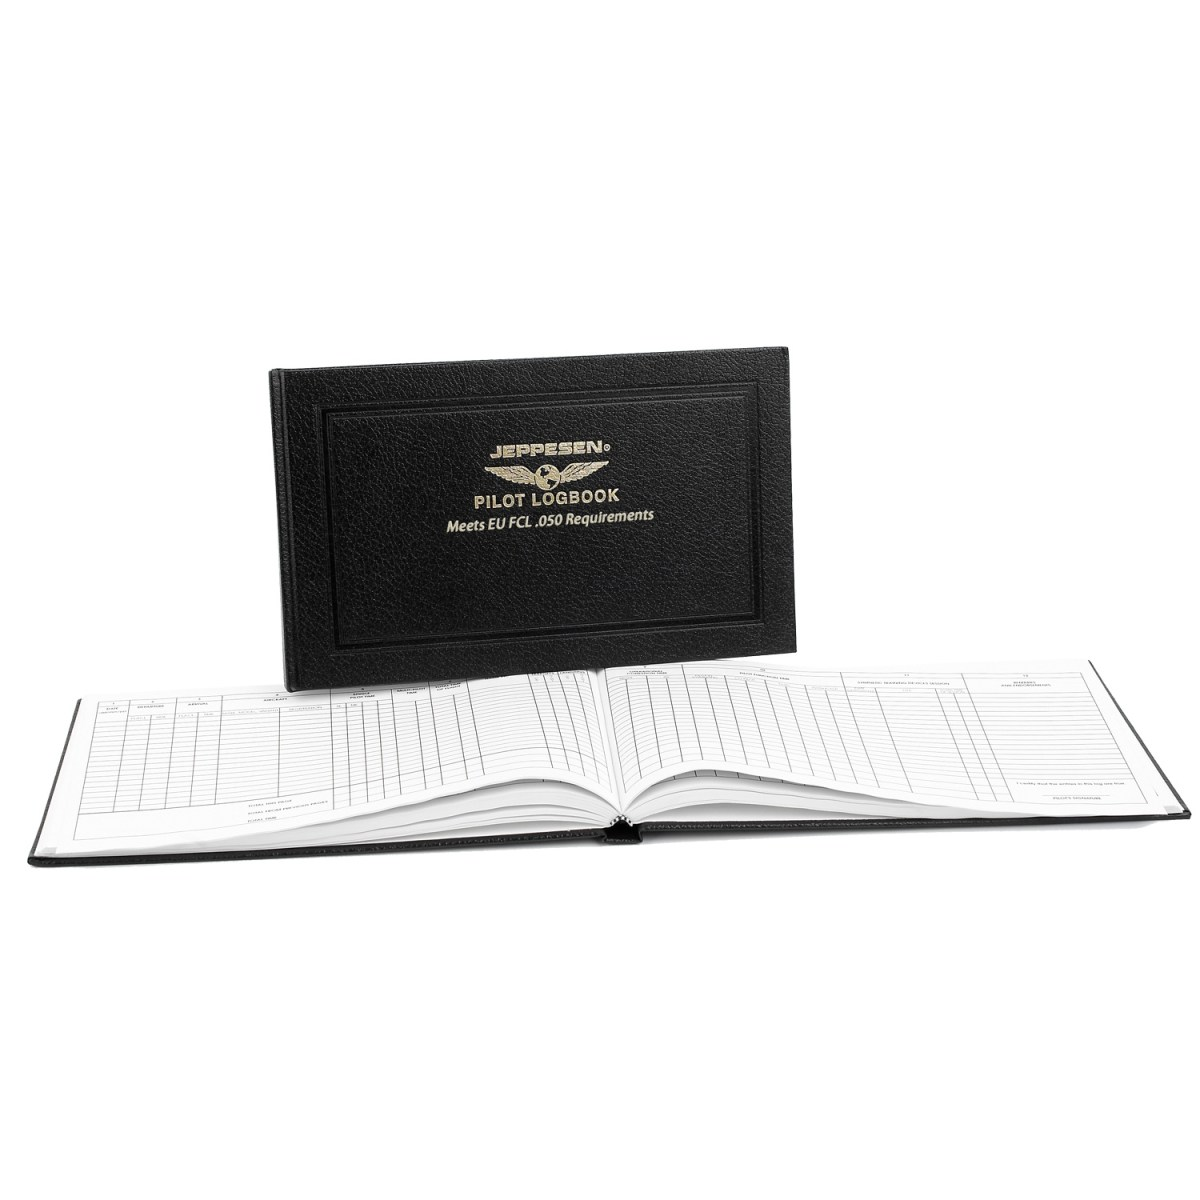 Pilot Logbook - This is the one you should get!